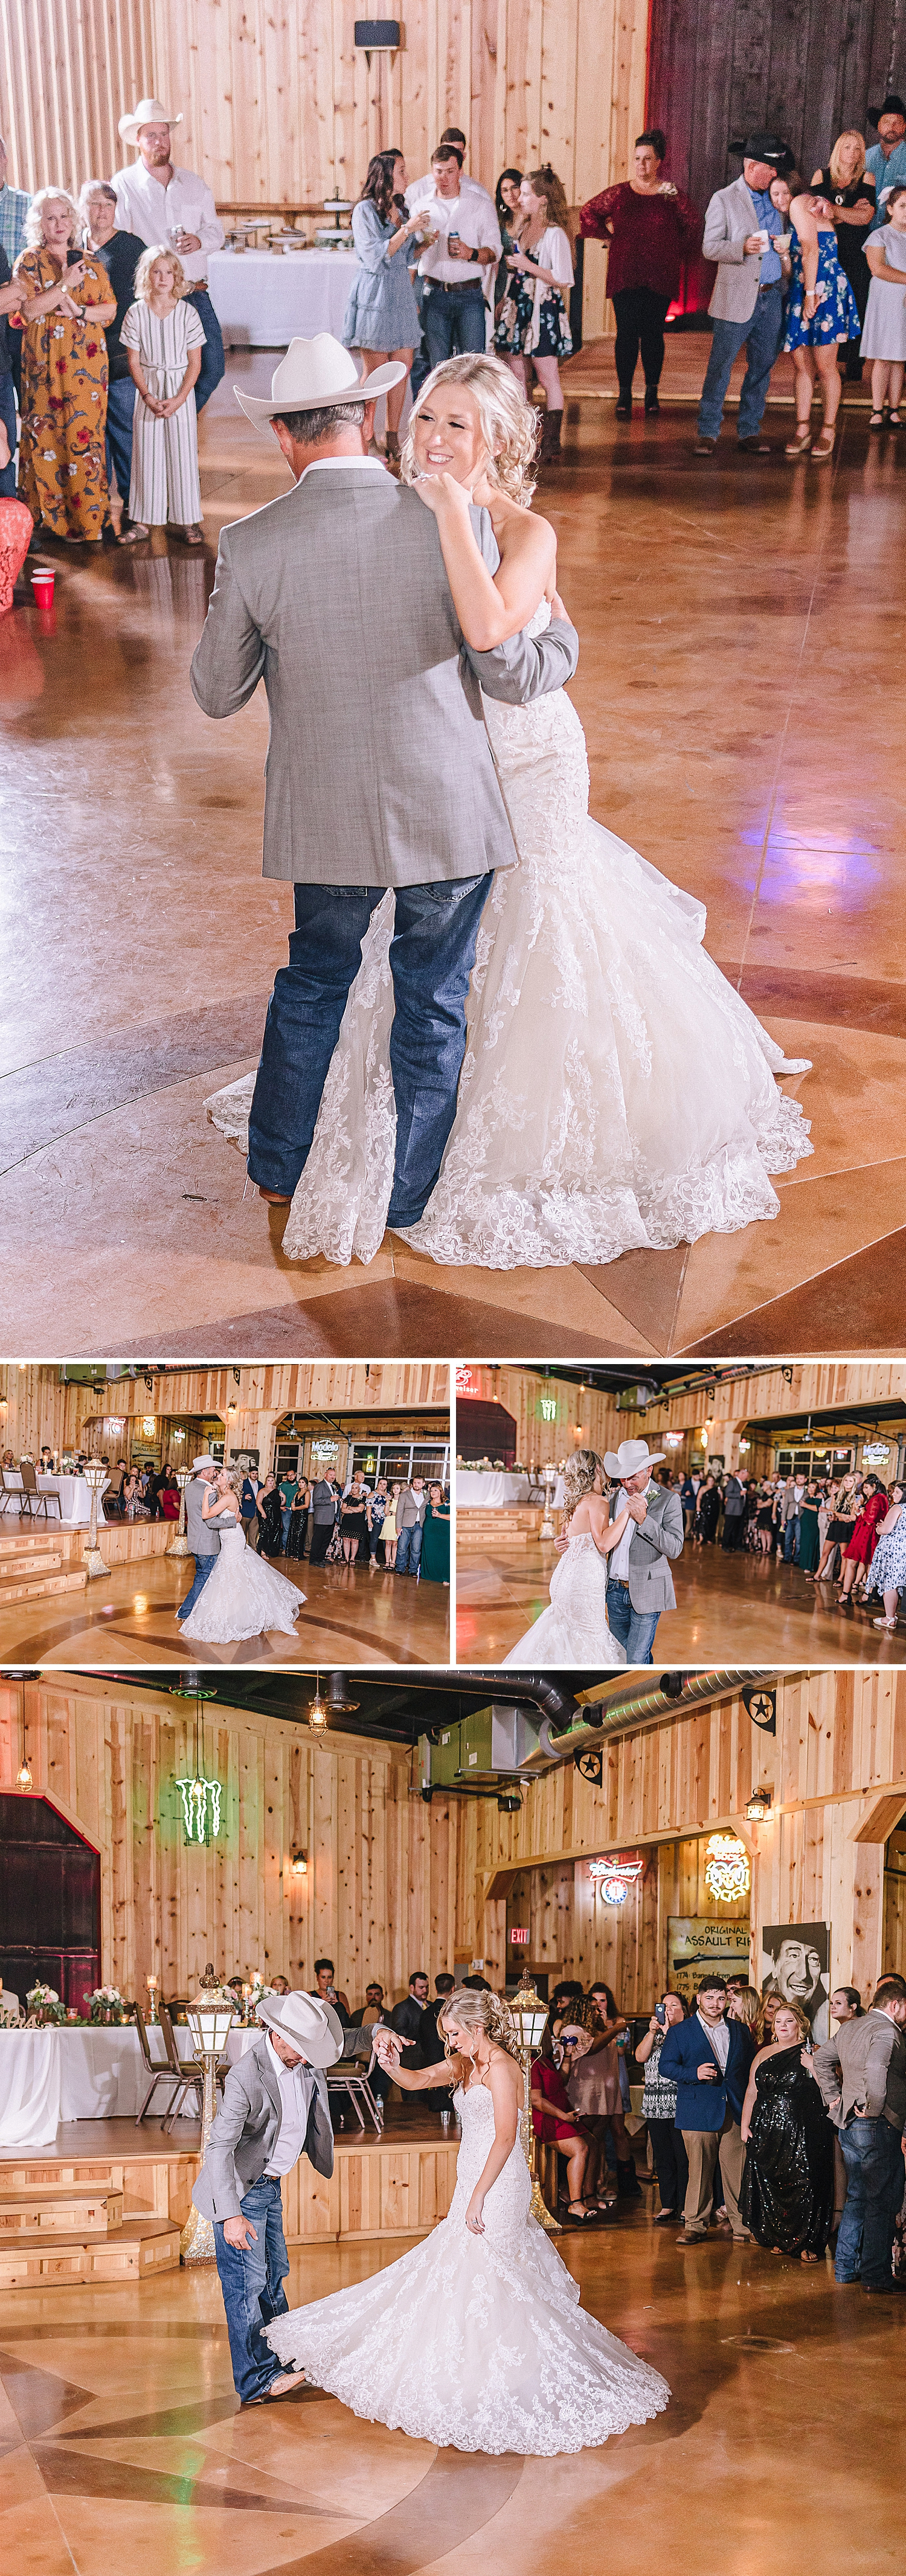 Rackler-Ranch-LaVernia-Texas-Wedding-Carly-Barton-Photography_0135.jpg